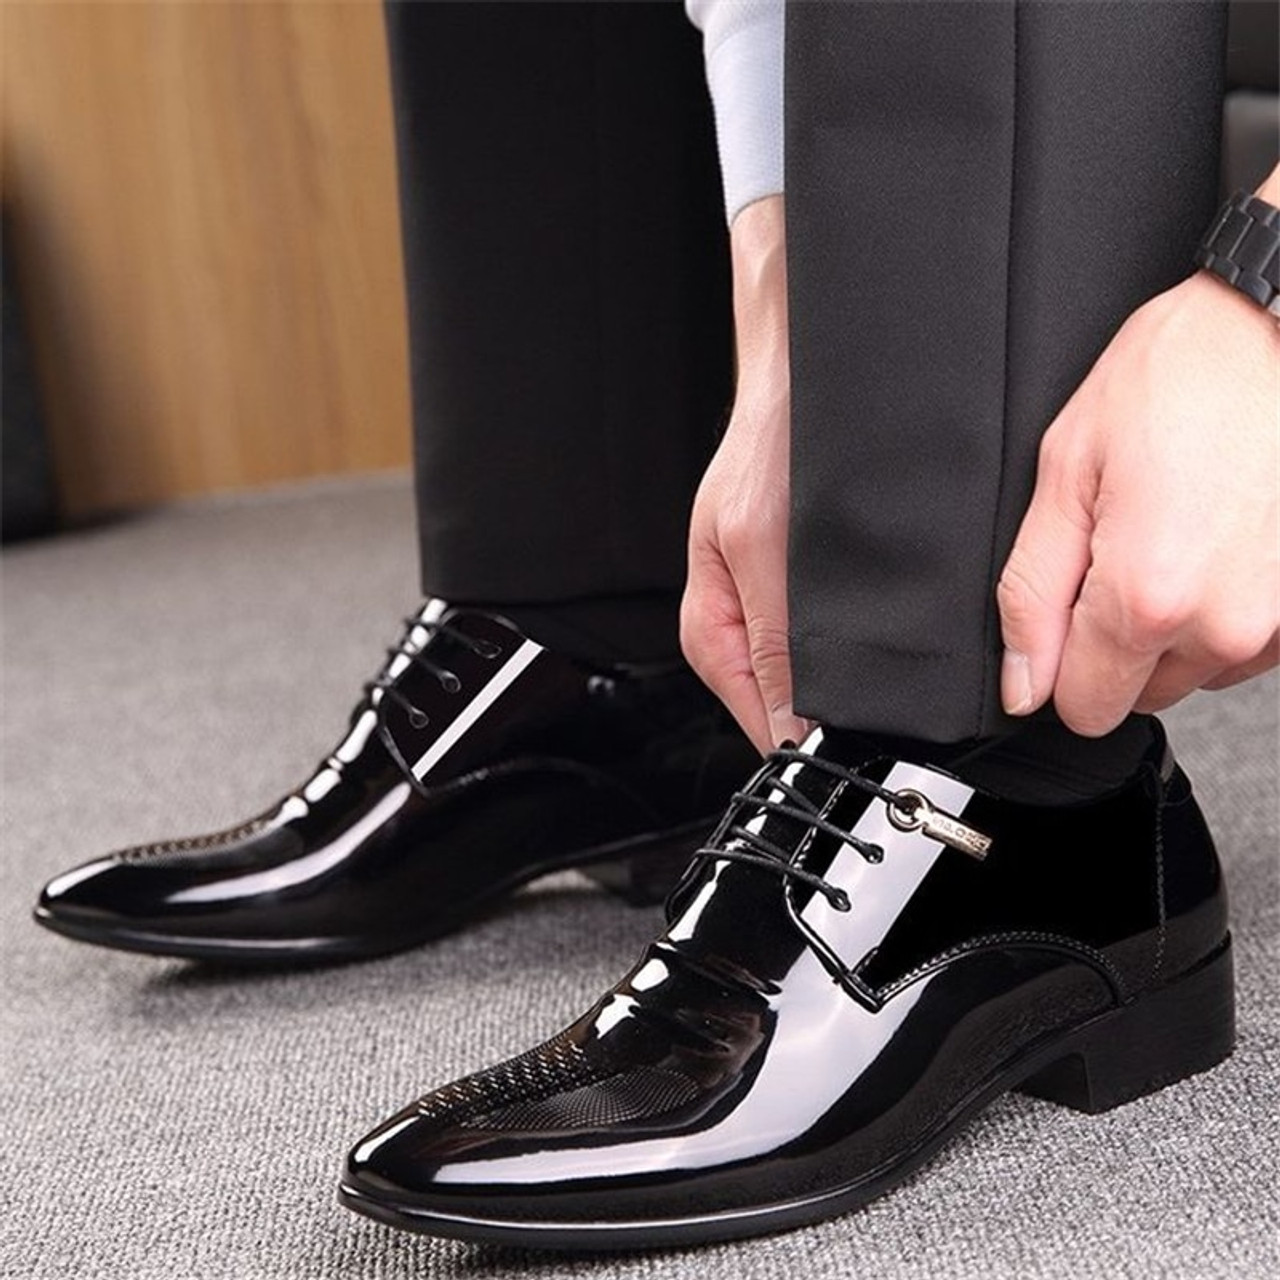 Mens Wedding Shoes.Black Designer Formal Oxford Shoes For Men Wedding Shoes Leather Italy Pointed Toe Mens Dress Shoes 2018 Sapato Oxford Masculino